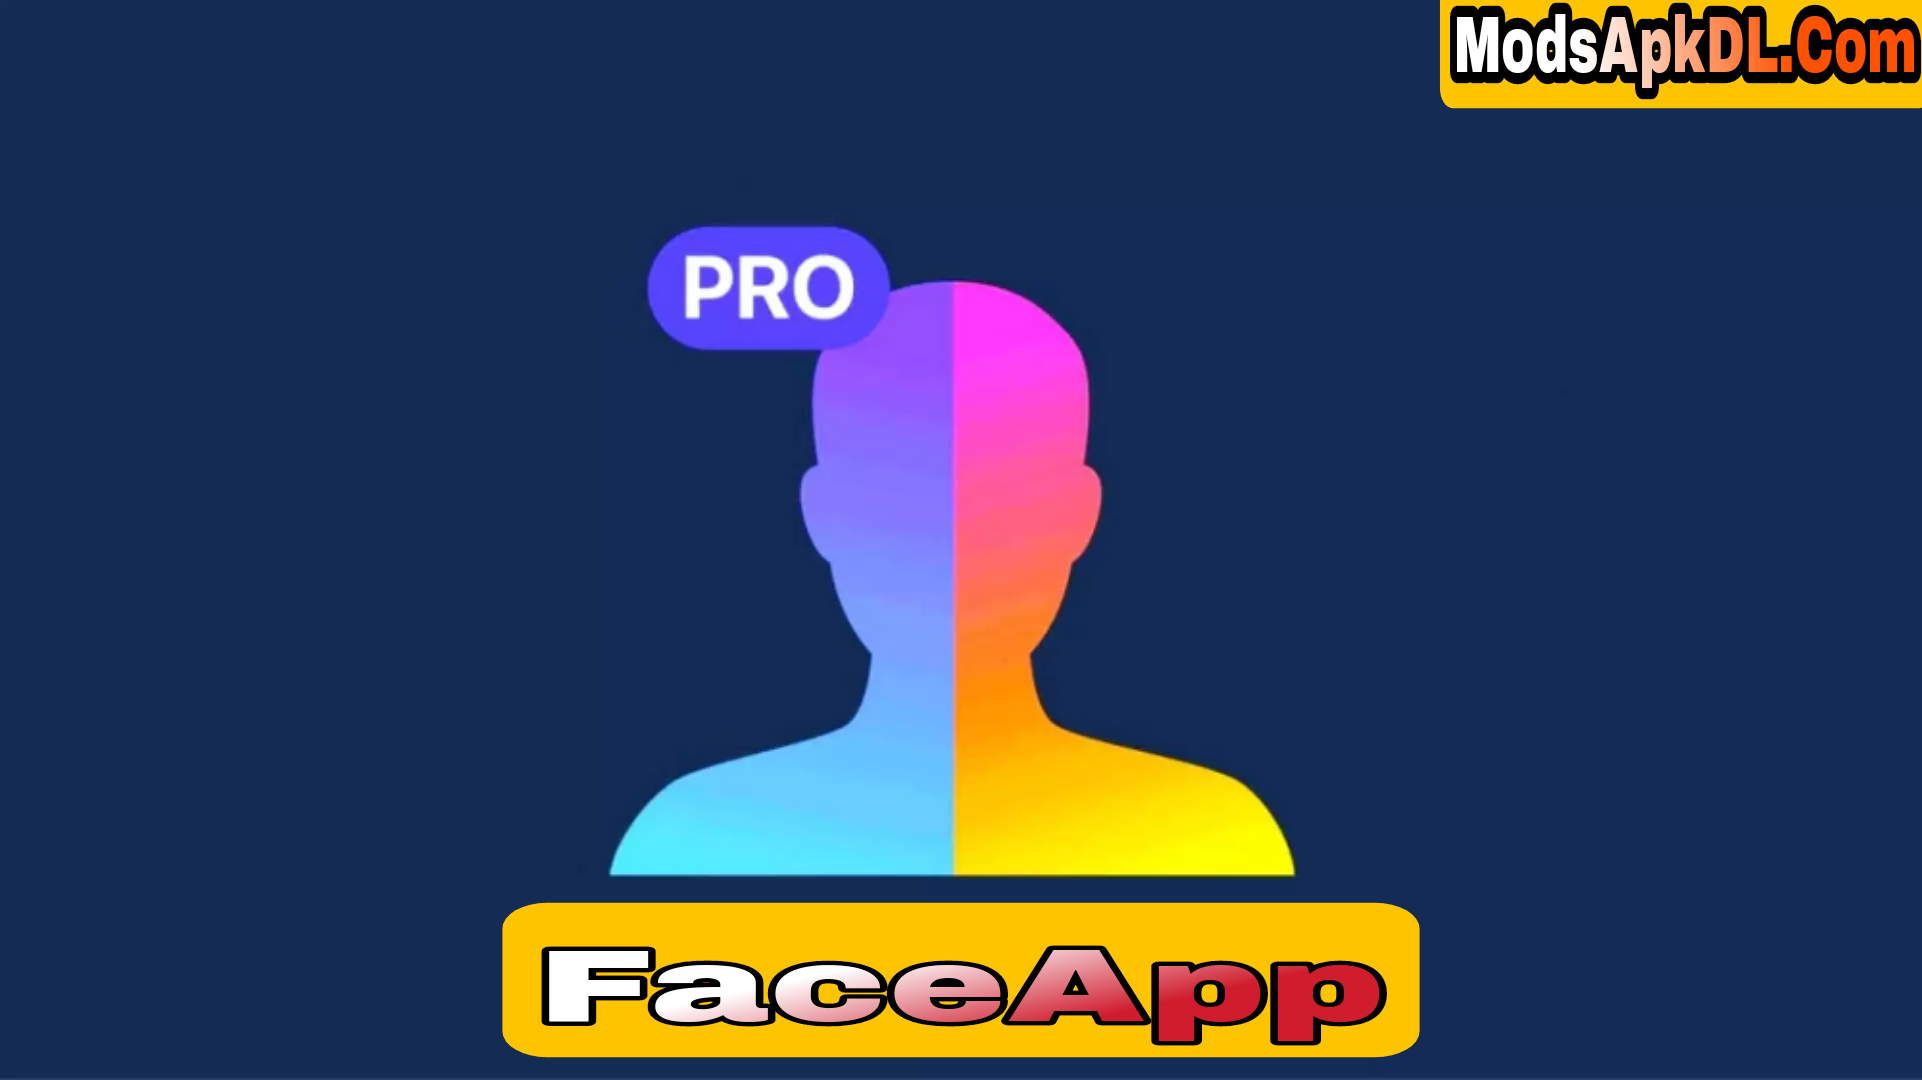 FaceApp MOD APK 4.5.0.5 Download (Pro Unlocked) For Android